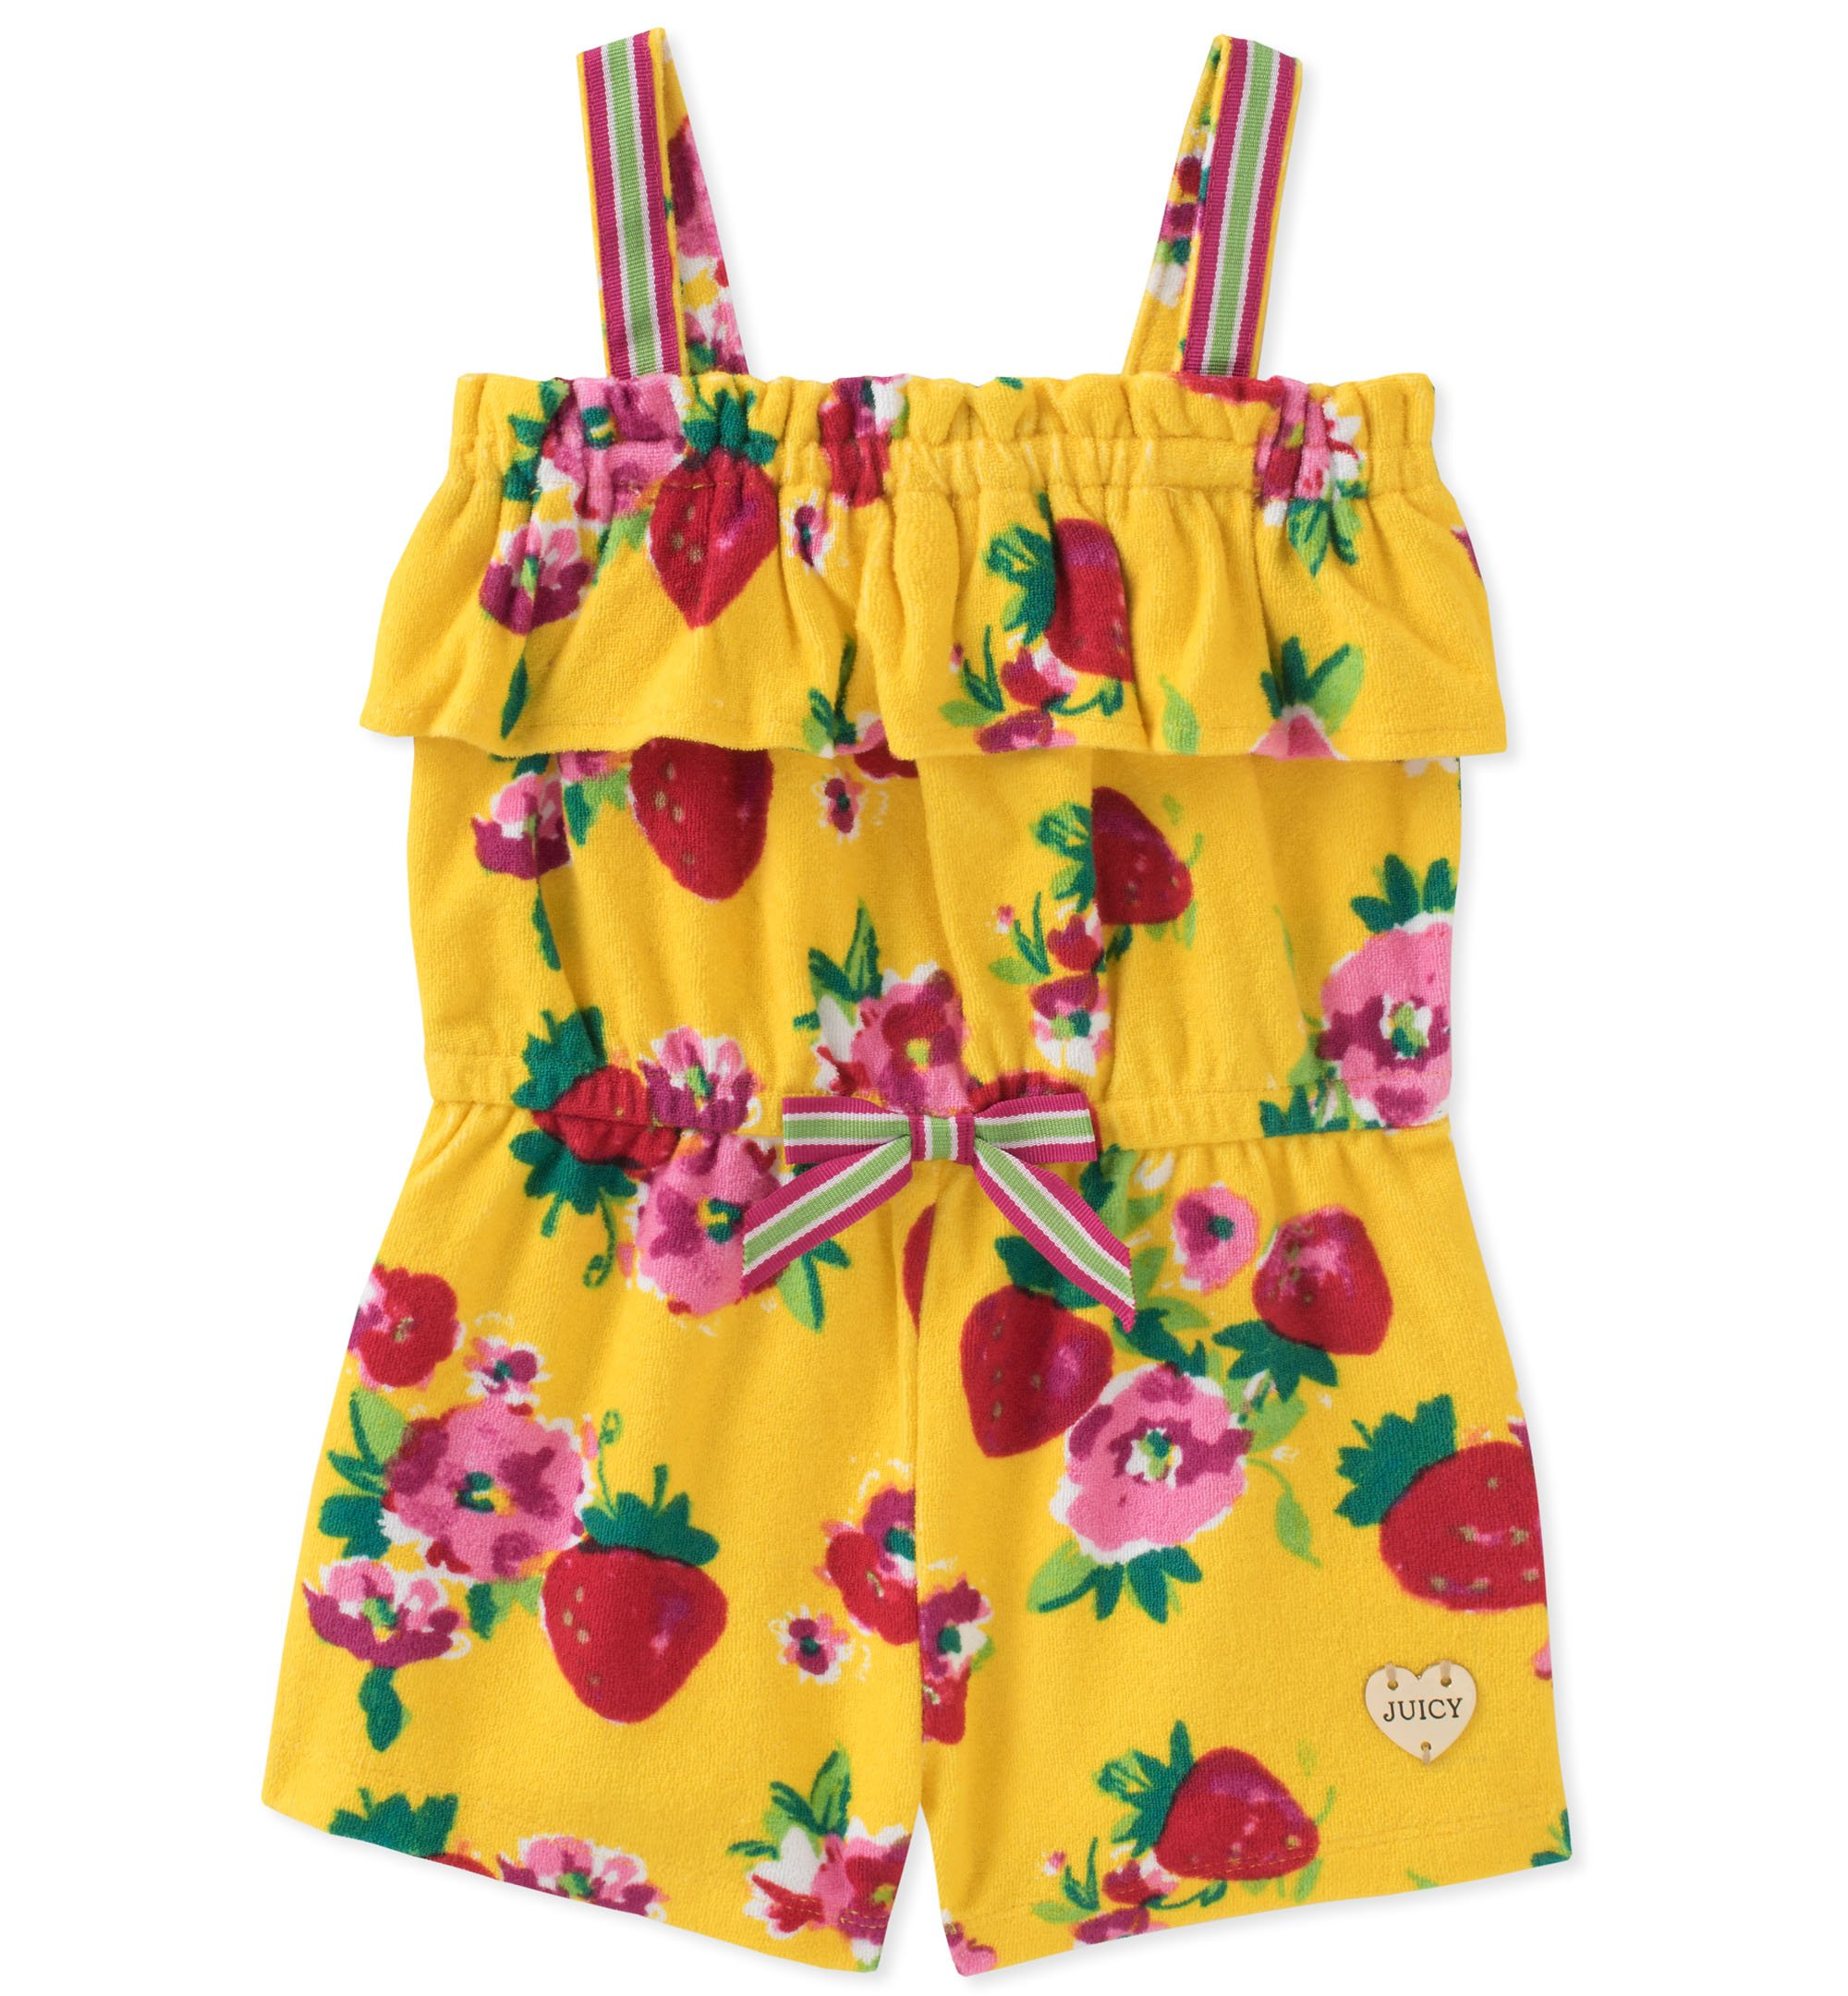 Juicy Couture Toddler Girls' Romper, Yellow/Print, 4T